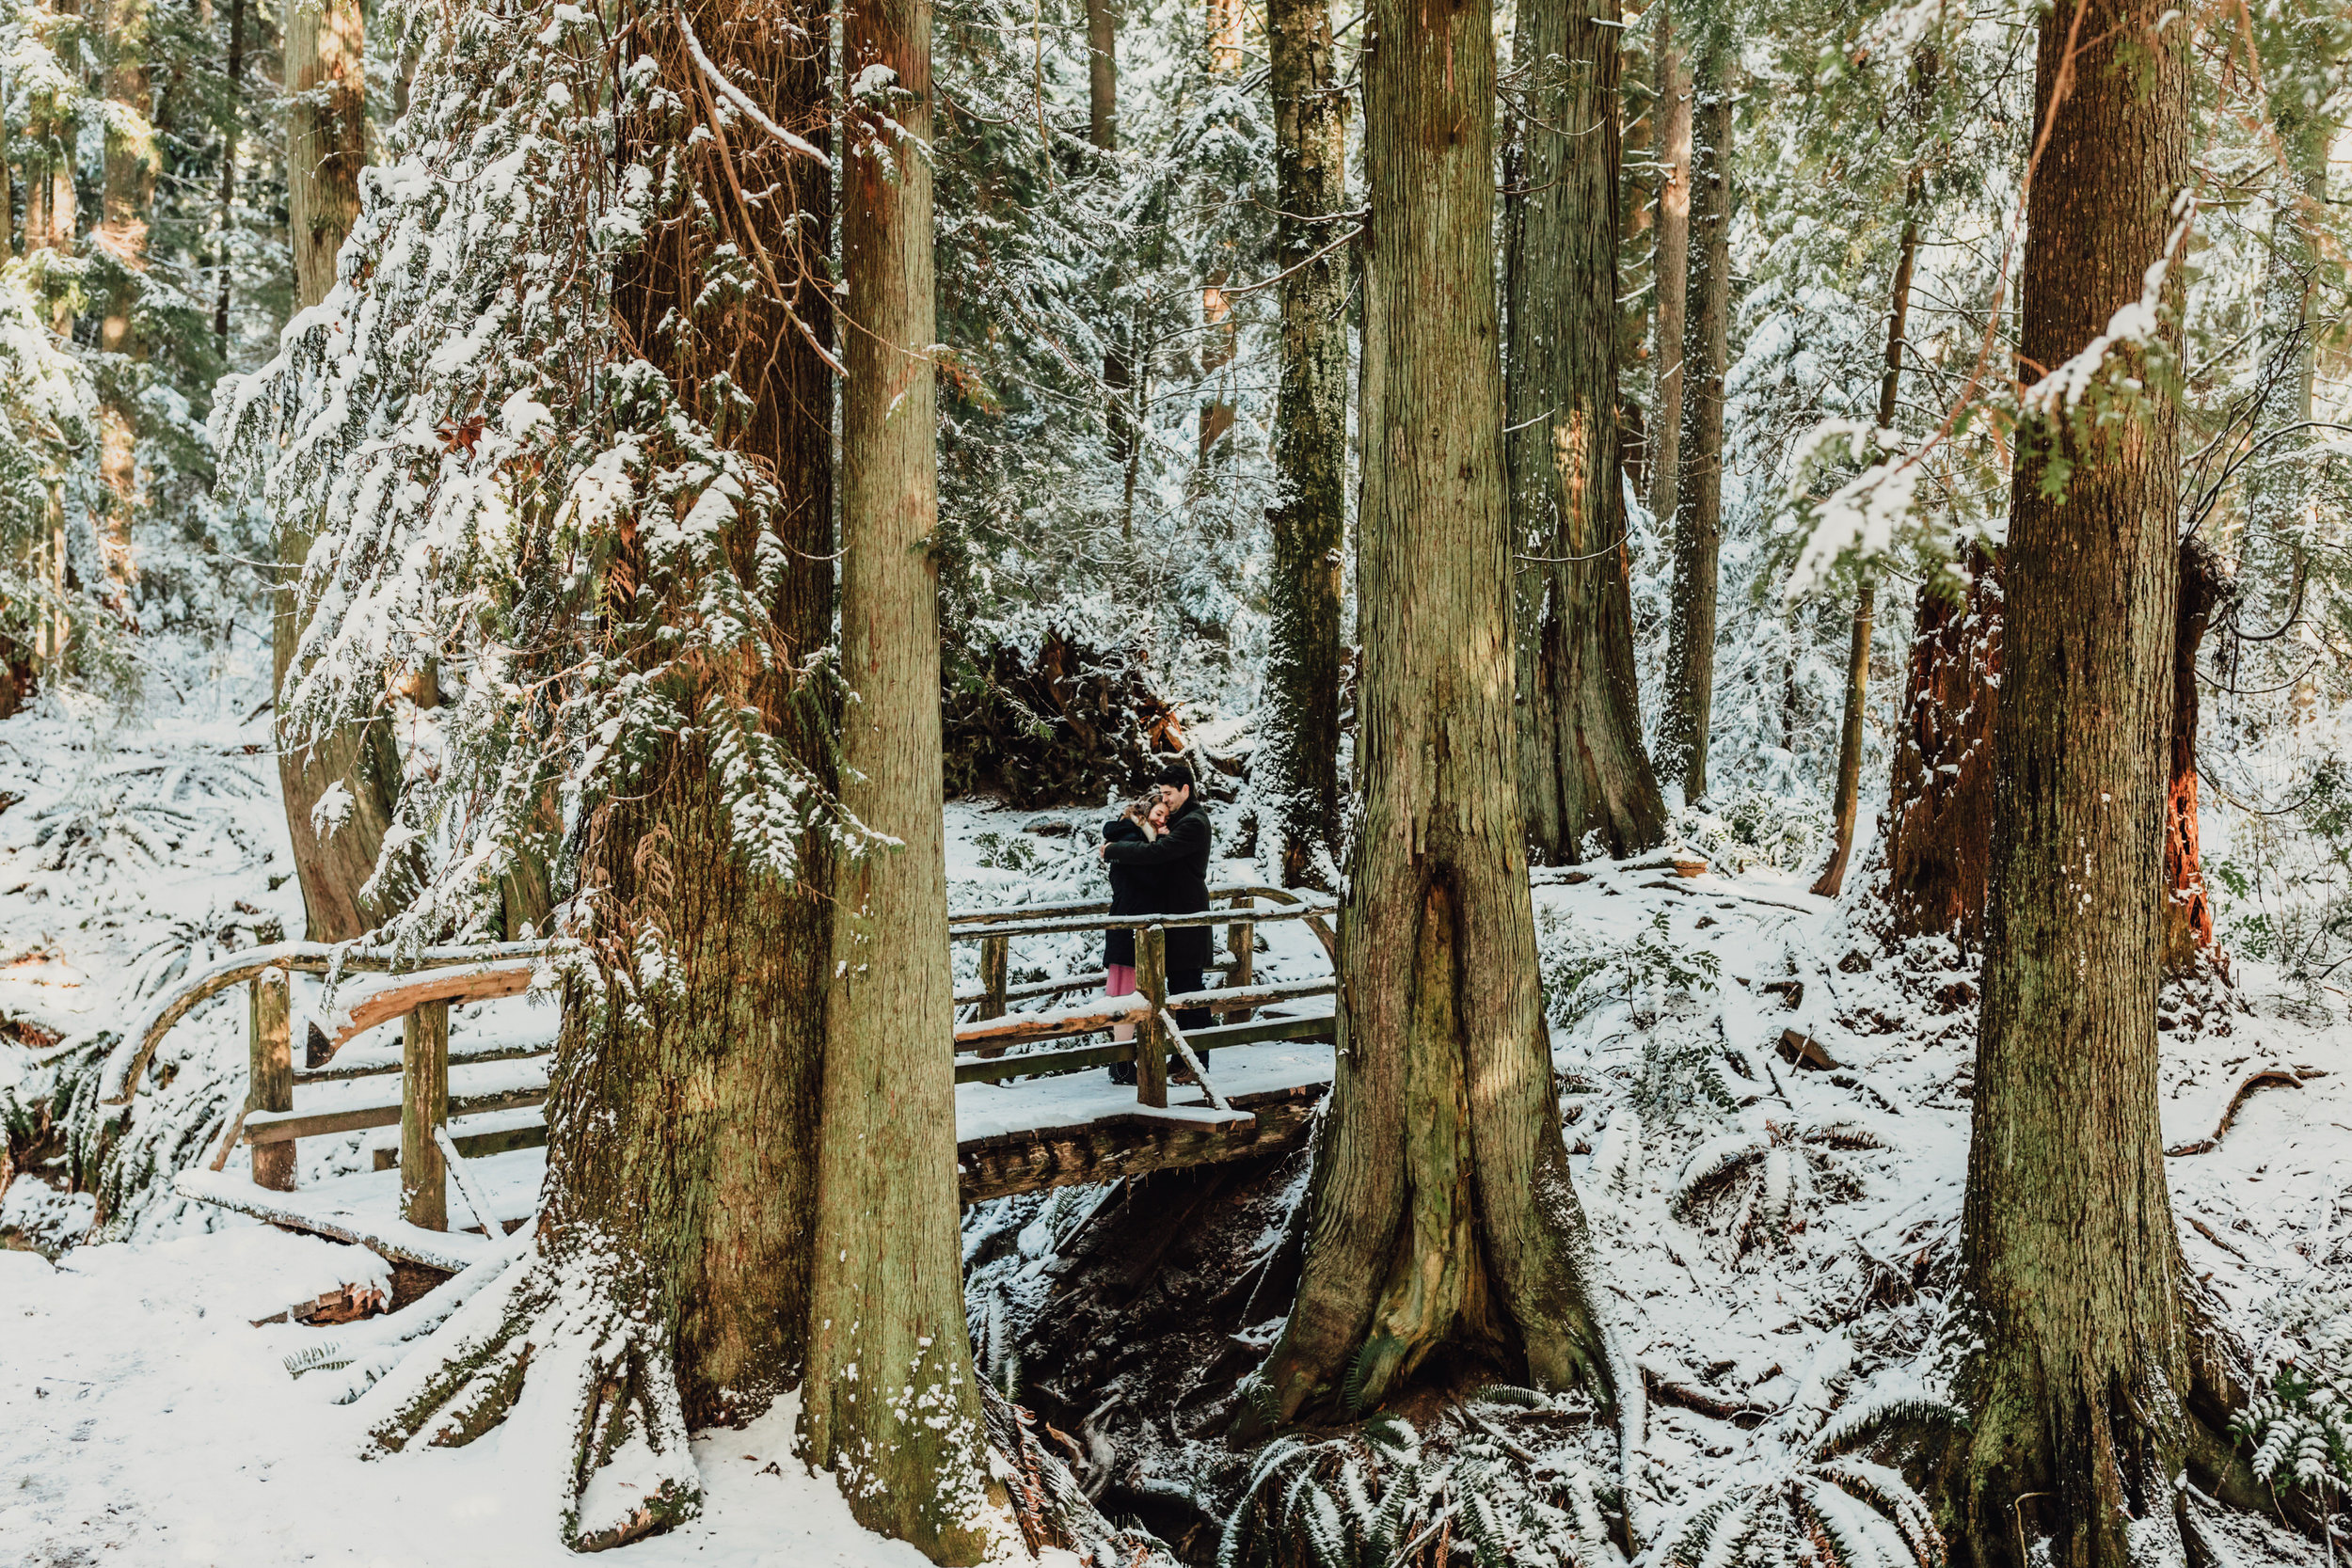 Snowy Engagement Photos - Gibsons Engagement Photos - Sunshine Coast Engagement Photos - Vancouver Wedding Photographer and Videographer - Jennifer Picard Photography062.JPG